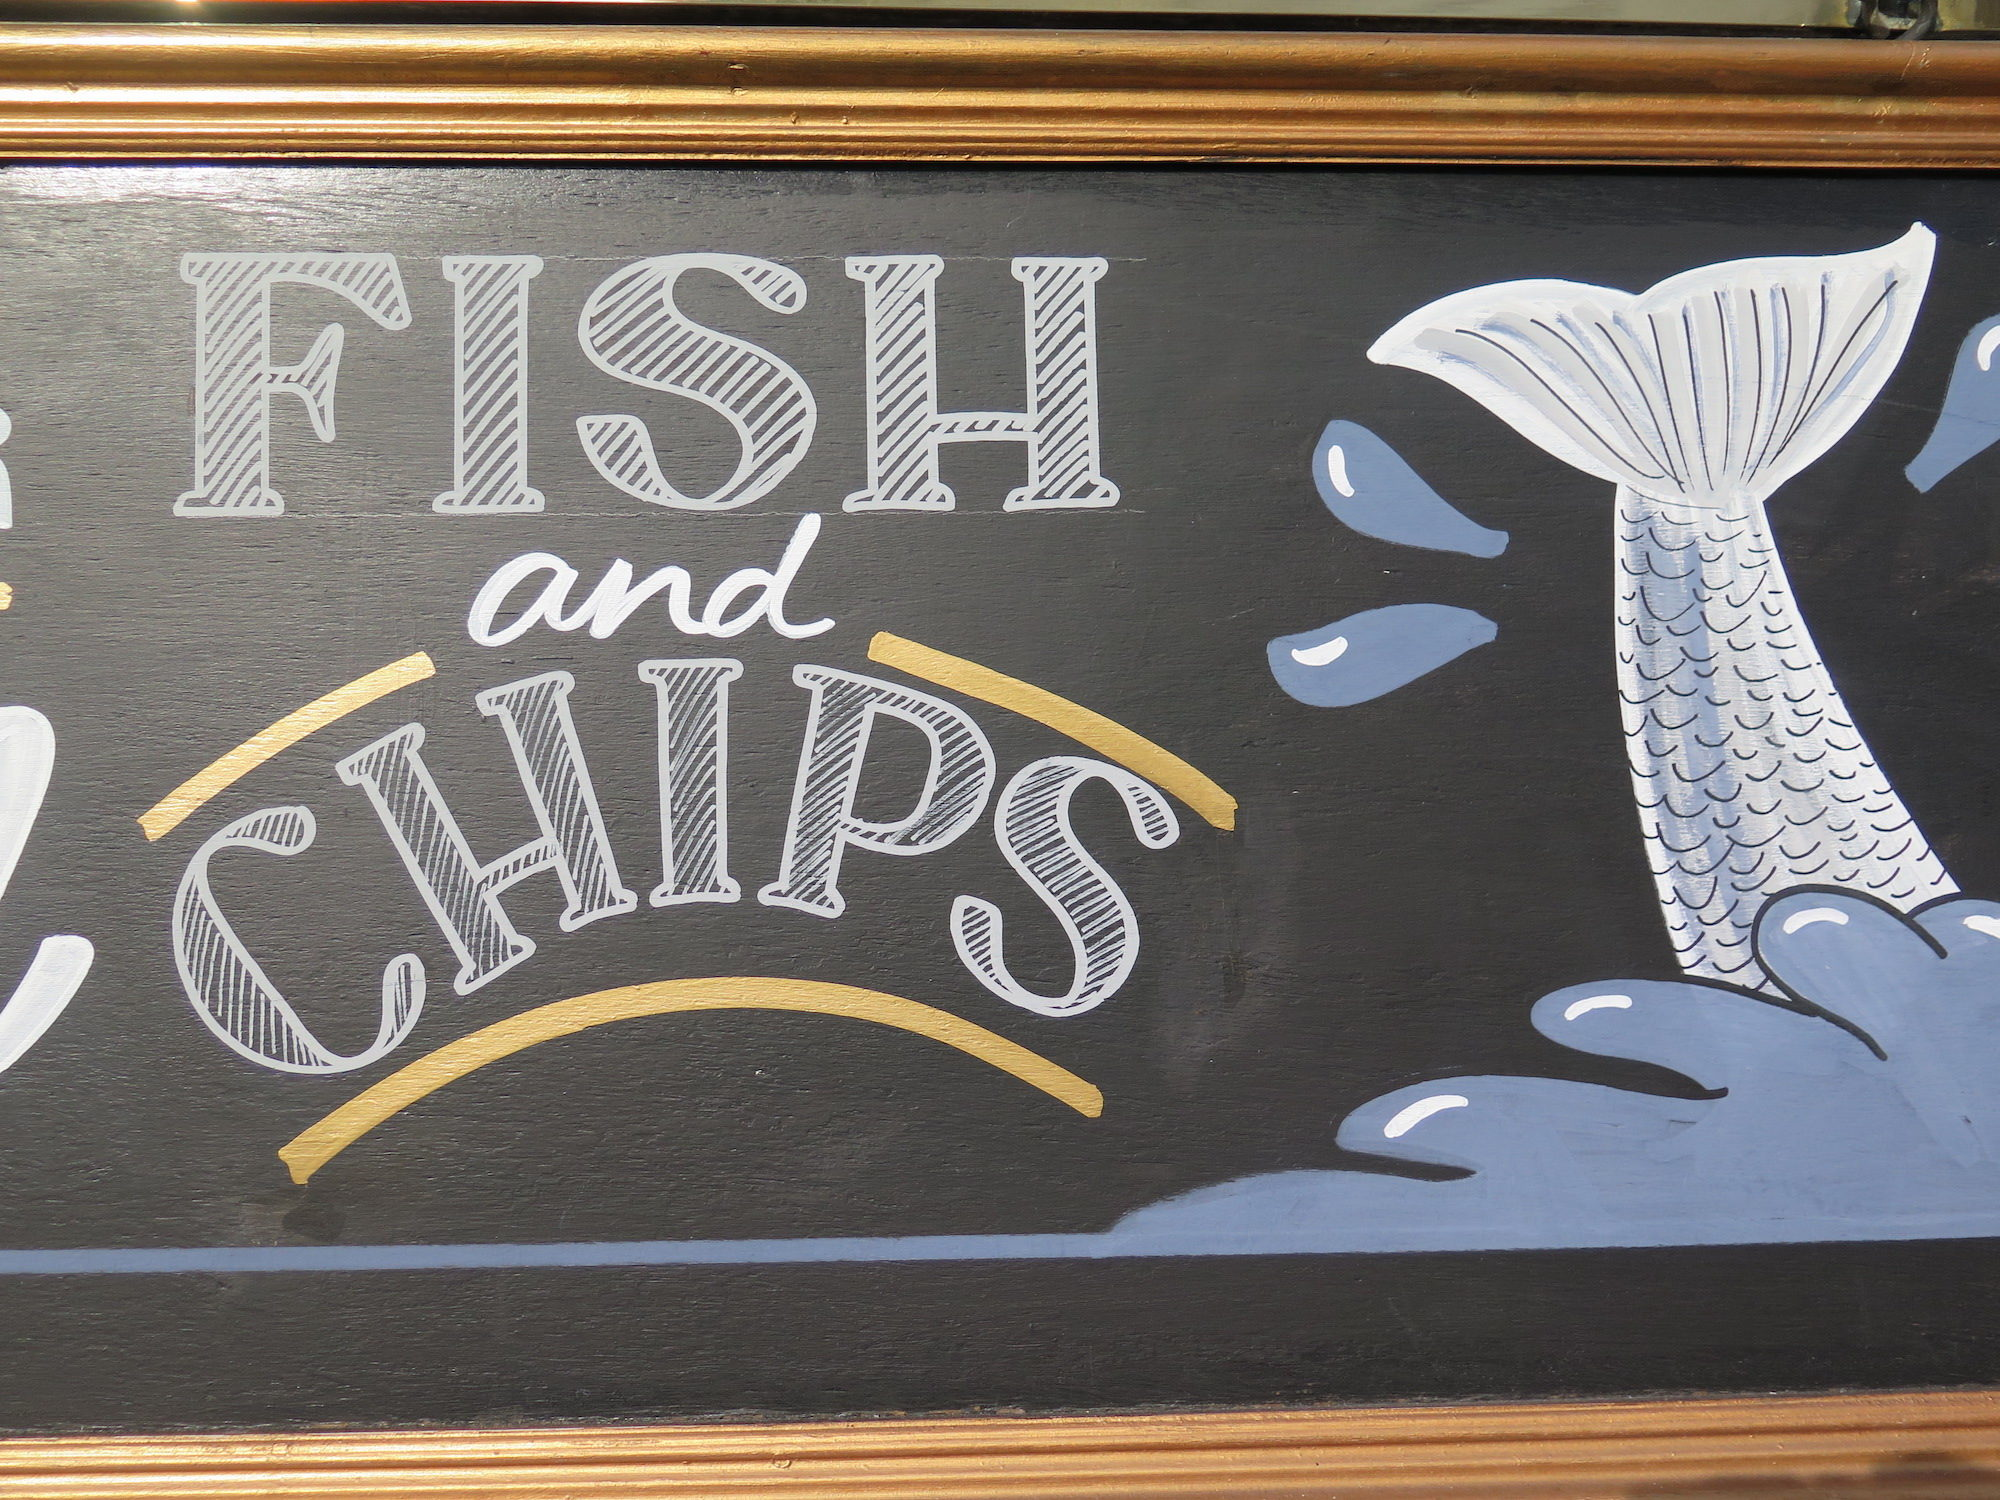 When in London, one must try fish and chips, one of the national dishes of England.